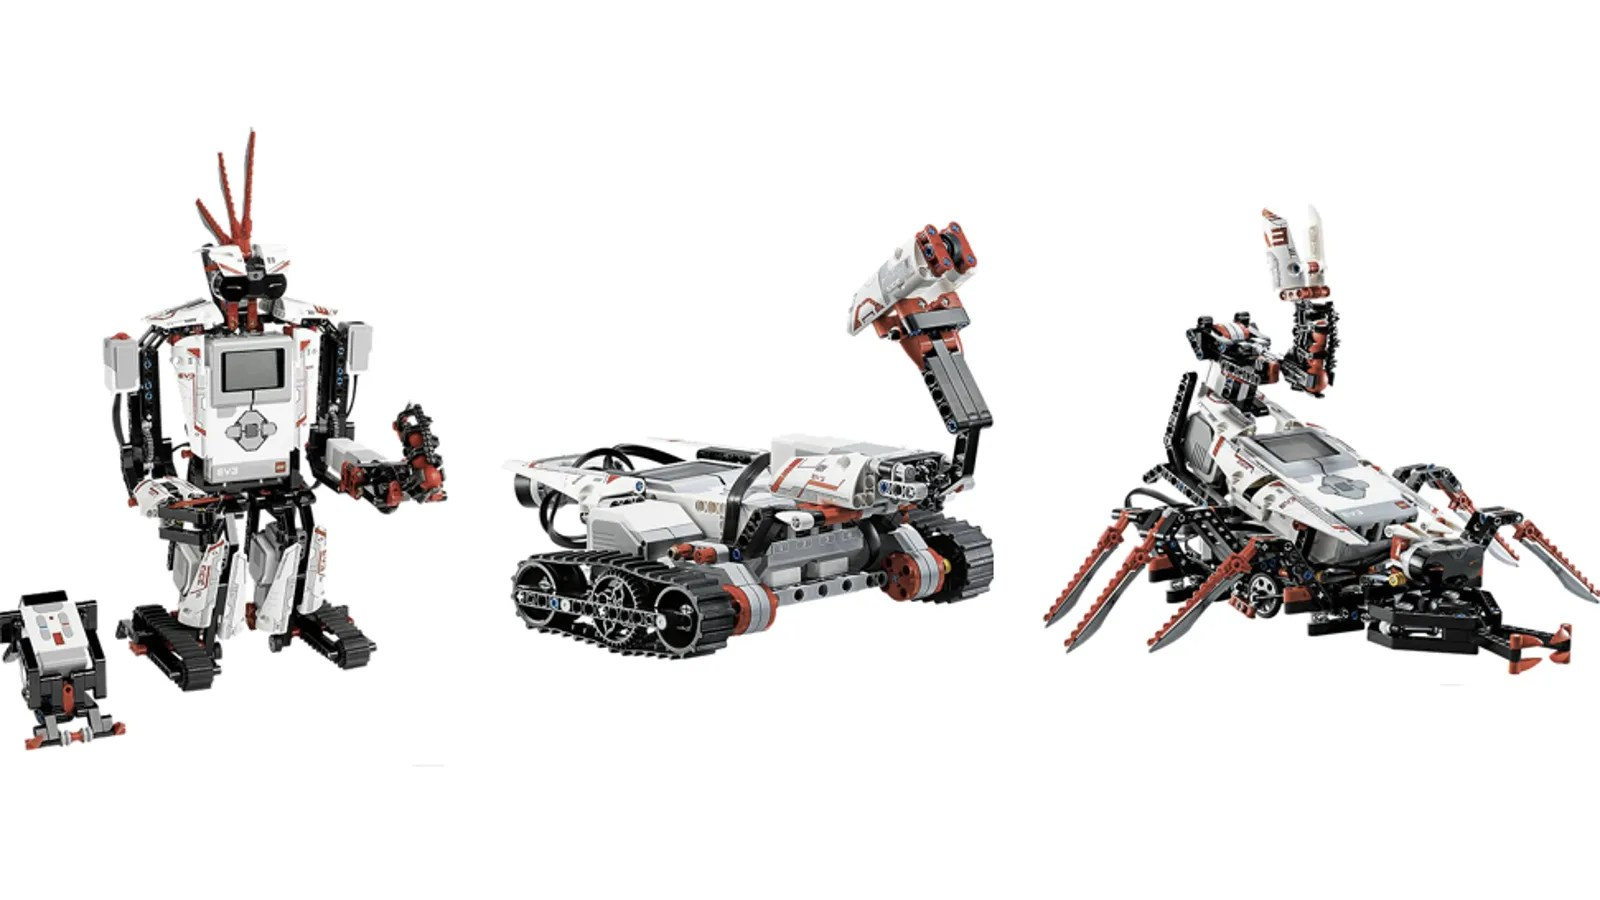 Lego Mindstorms EV3 Review: So Awesome